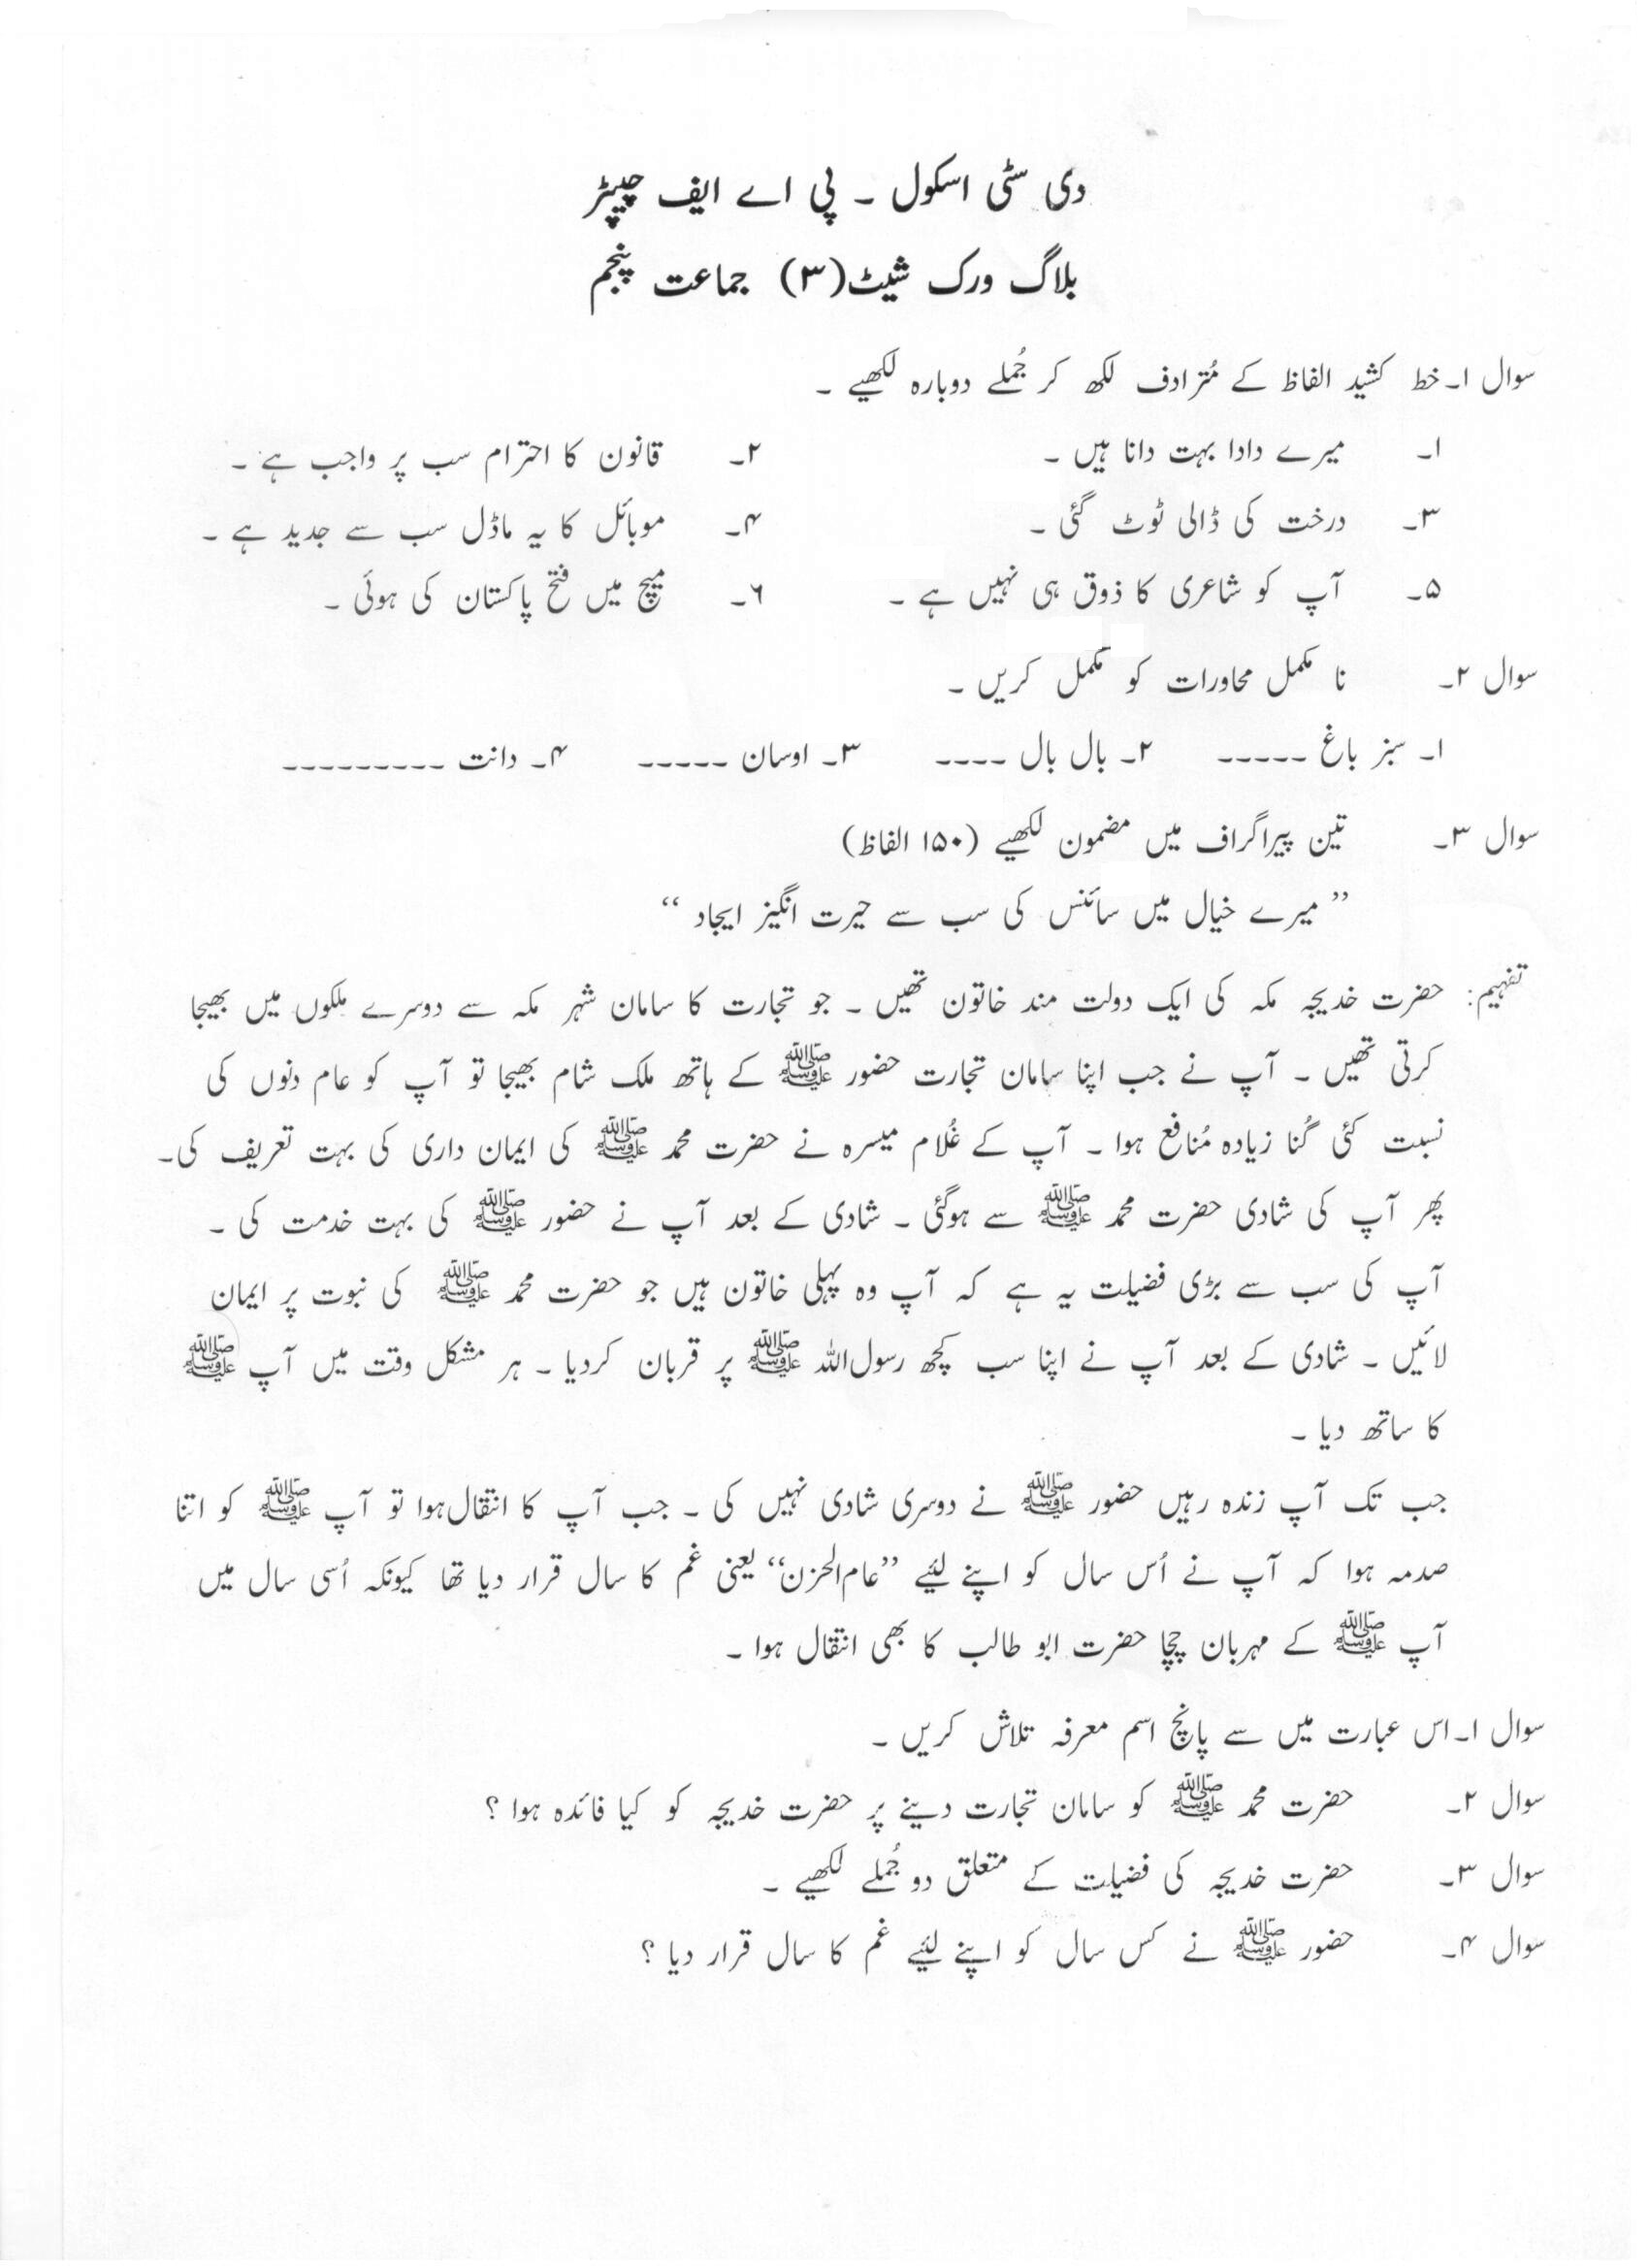 mother essay in urdu Conjugation essay on my mother in hindi for class 1 meaning in urdu hamariweb custom essay writing pollution essay for class 1, 2 essay on my mother in english and urdu by telling this.